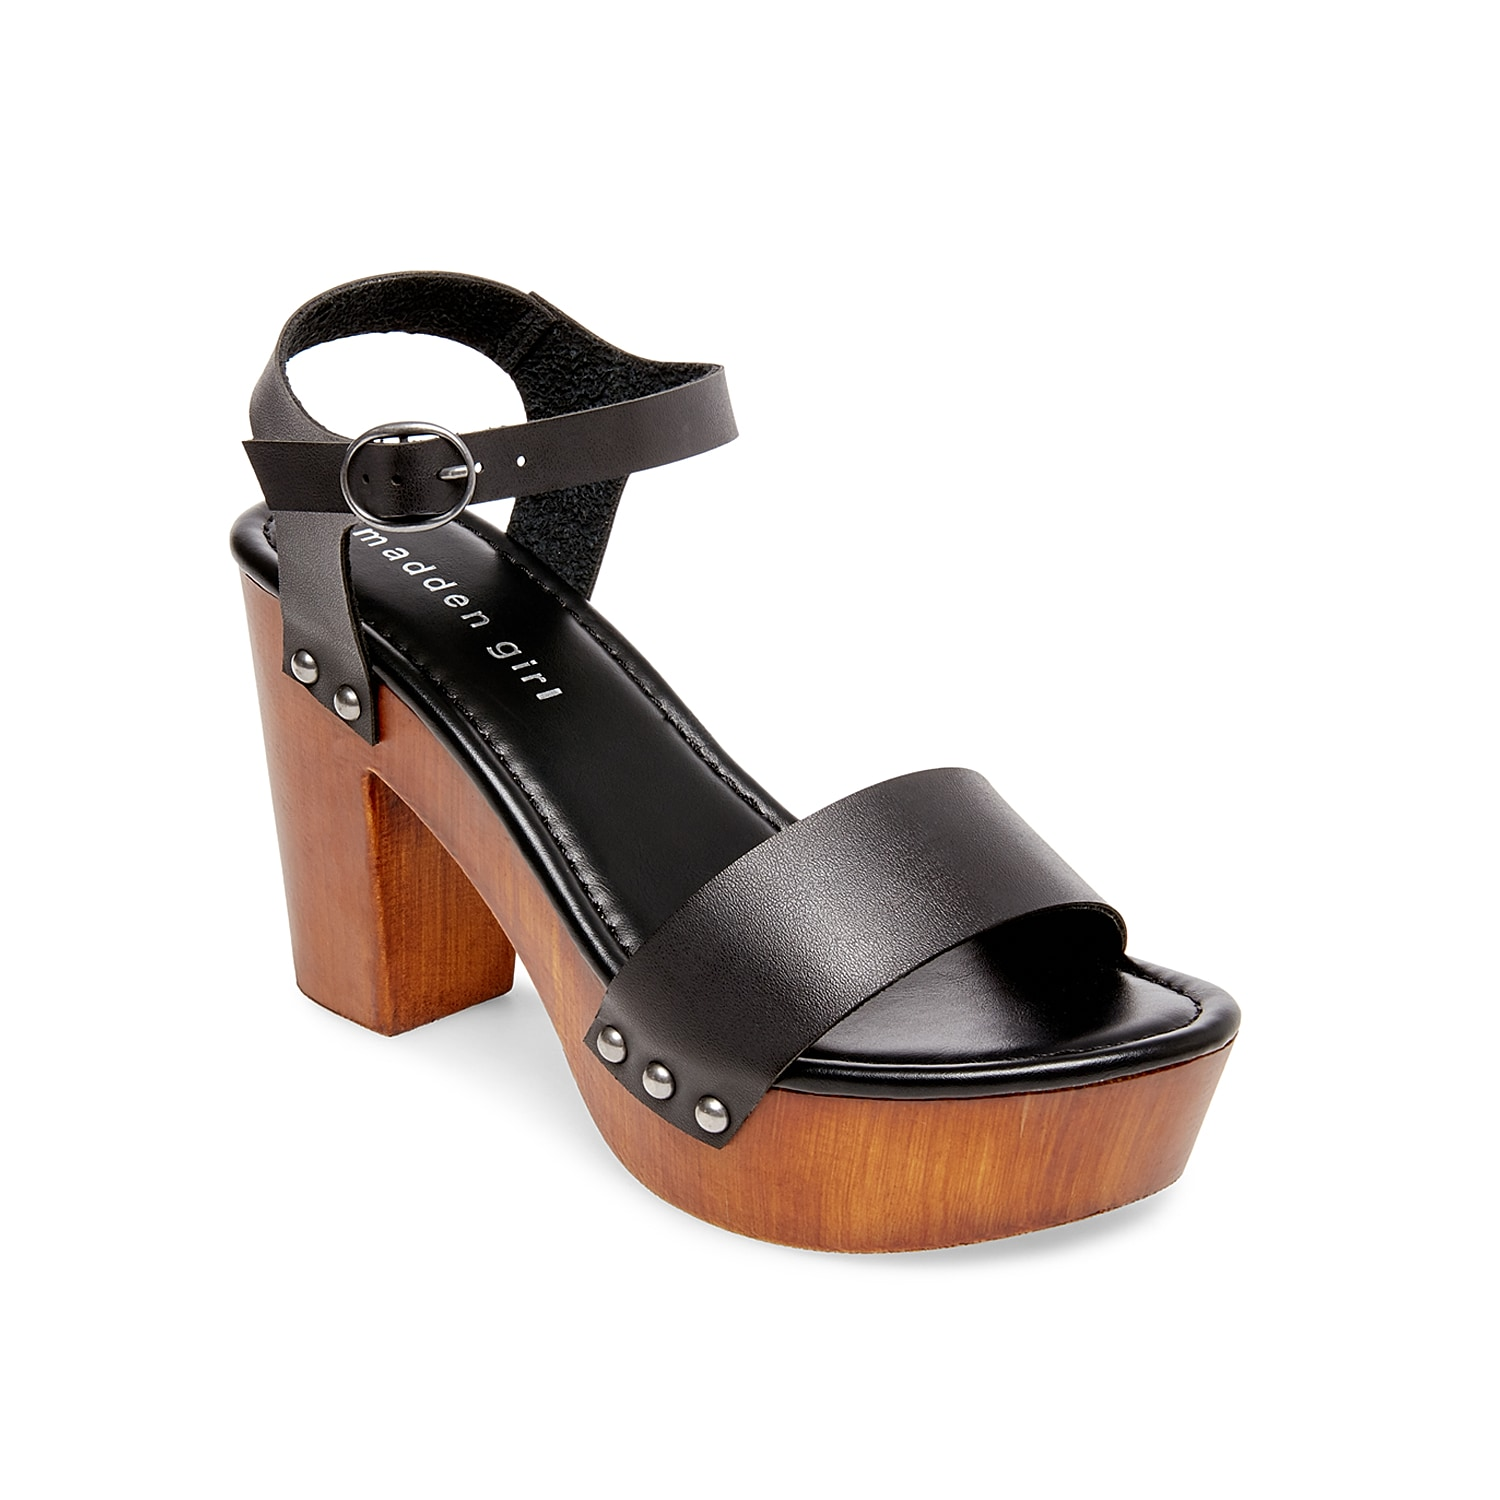 Feel nothing but fabulous when wearing the Lifft platform sandal from Madden Girl. This towering silhouette is fashioned with two-piece styling and stud accents for a little extra edge!